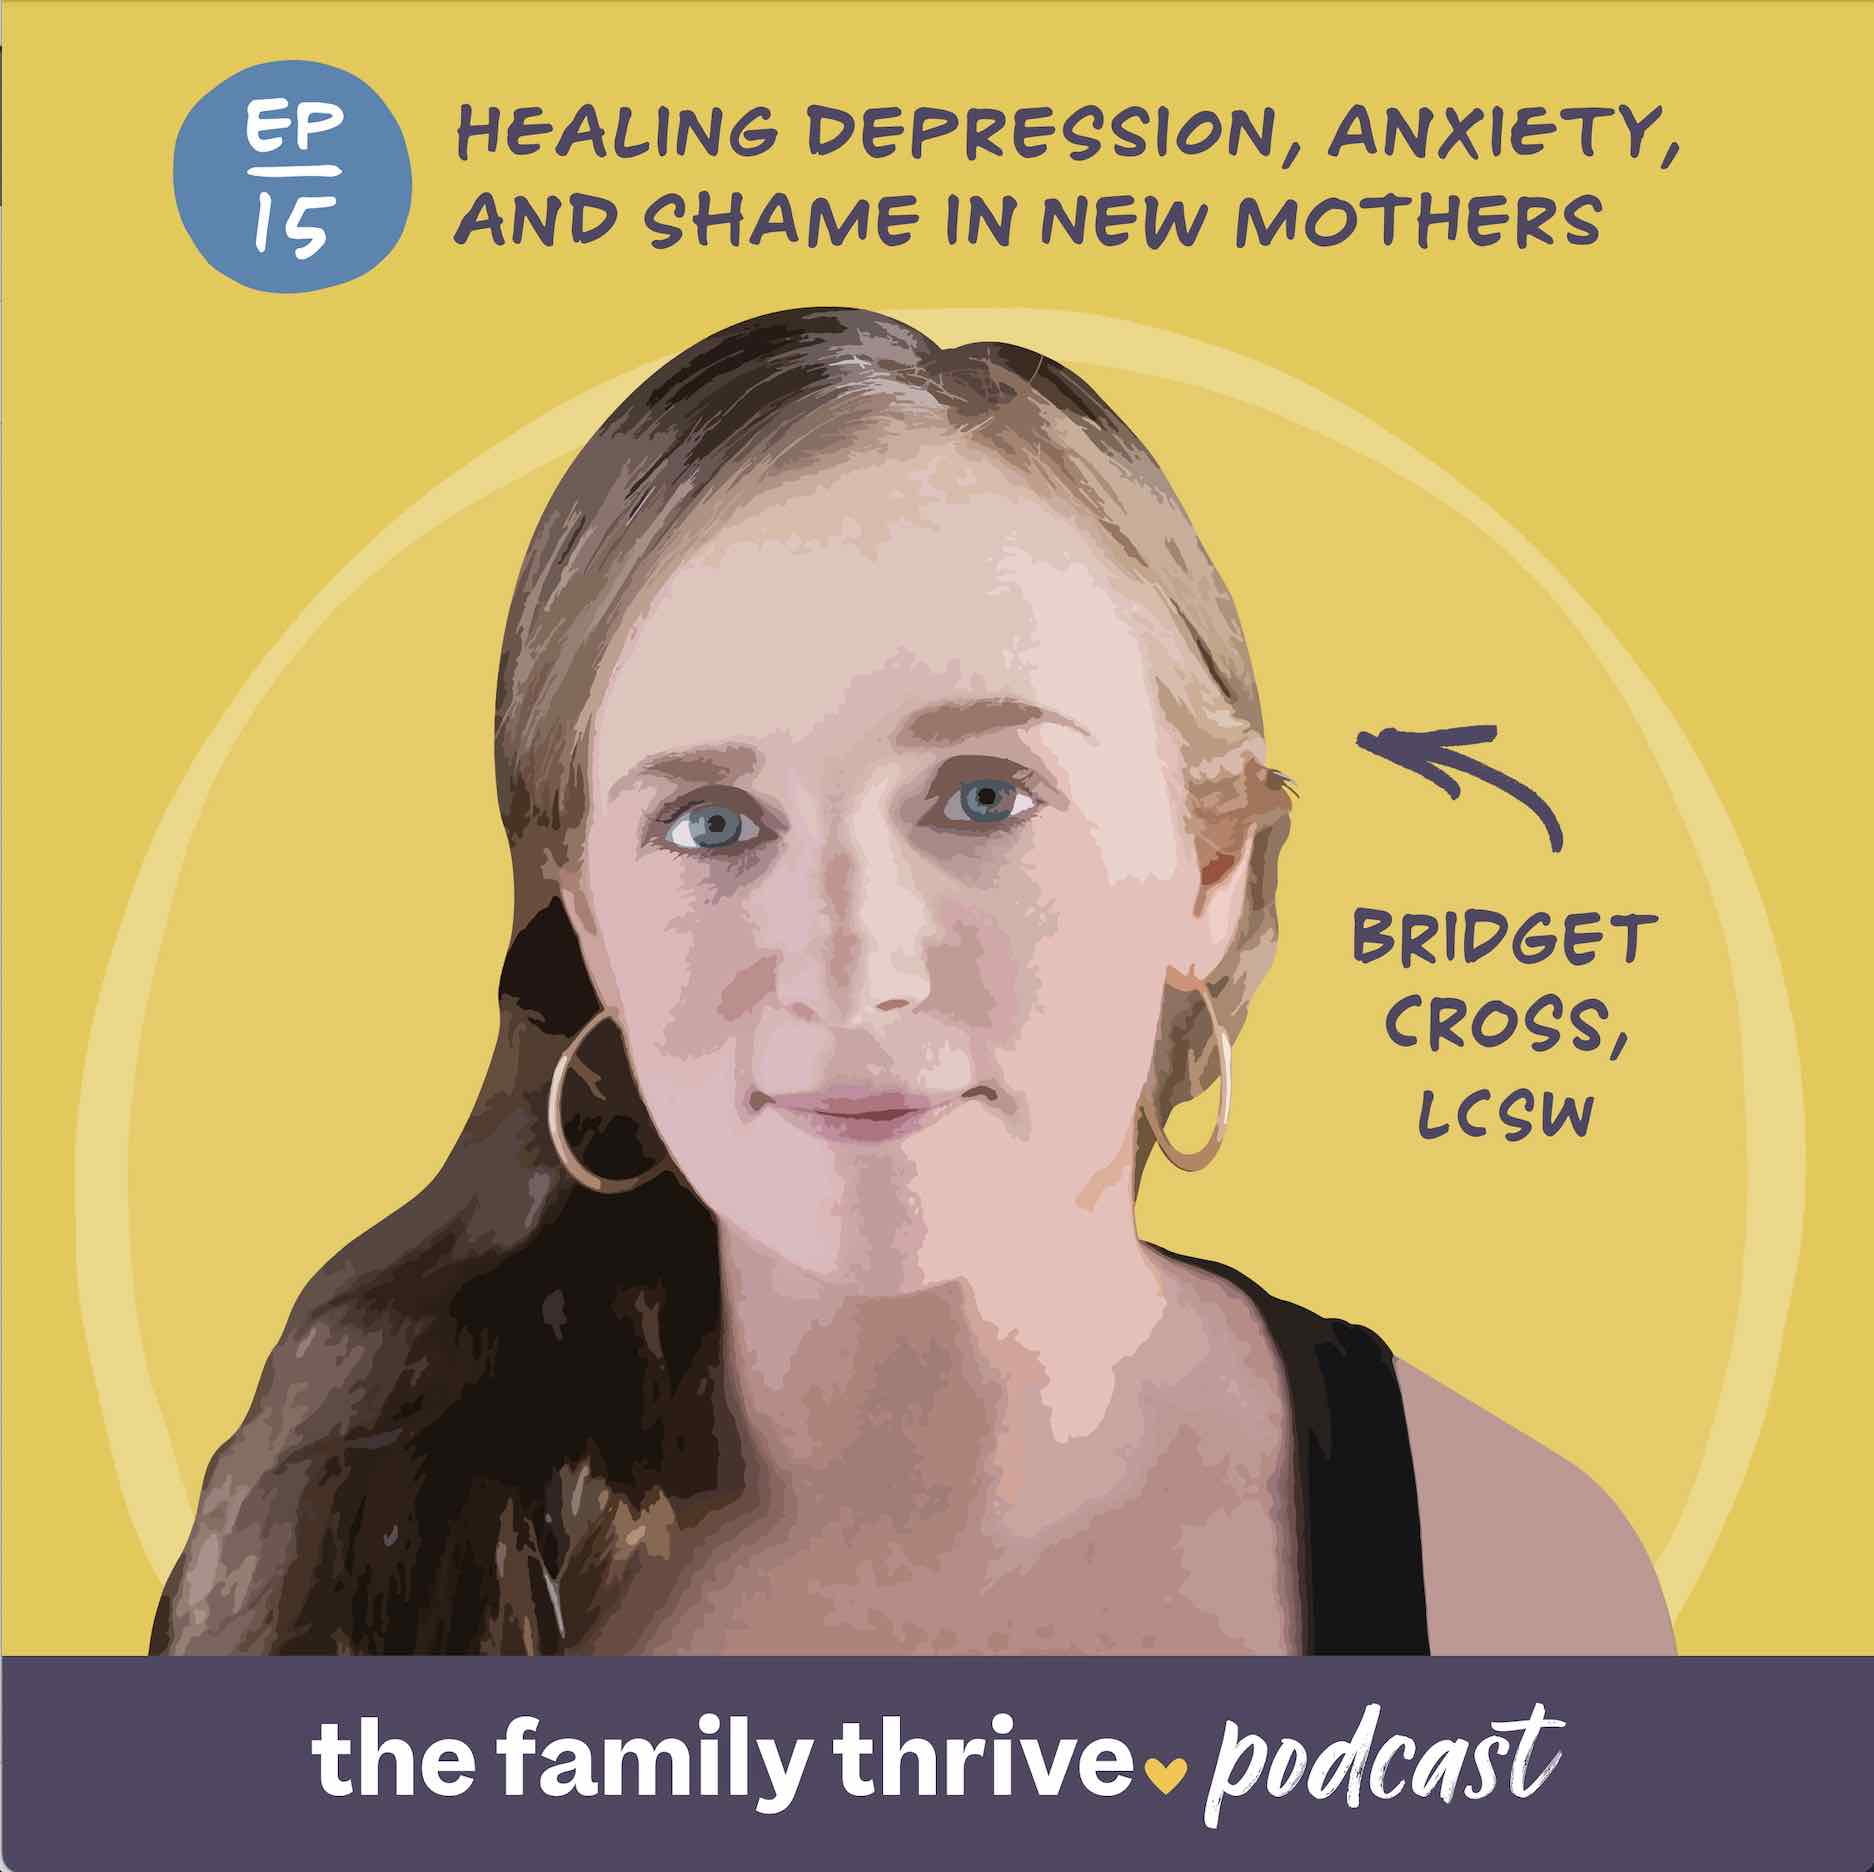 Podcast Ep. 15: Healing Depression, Anxiety, and Shame in New Mothers With Bridget Cross, LCSW, PMH-C